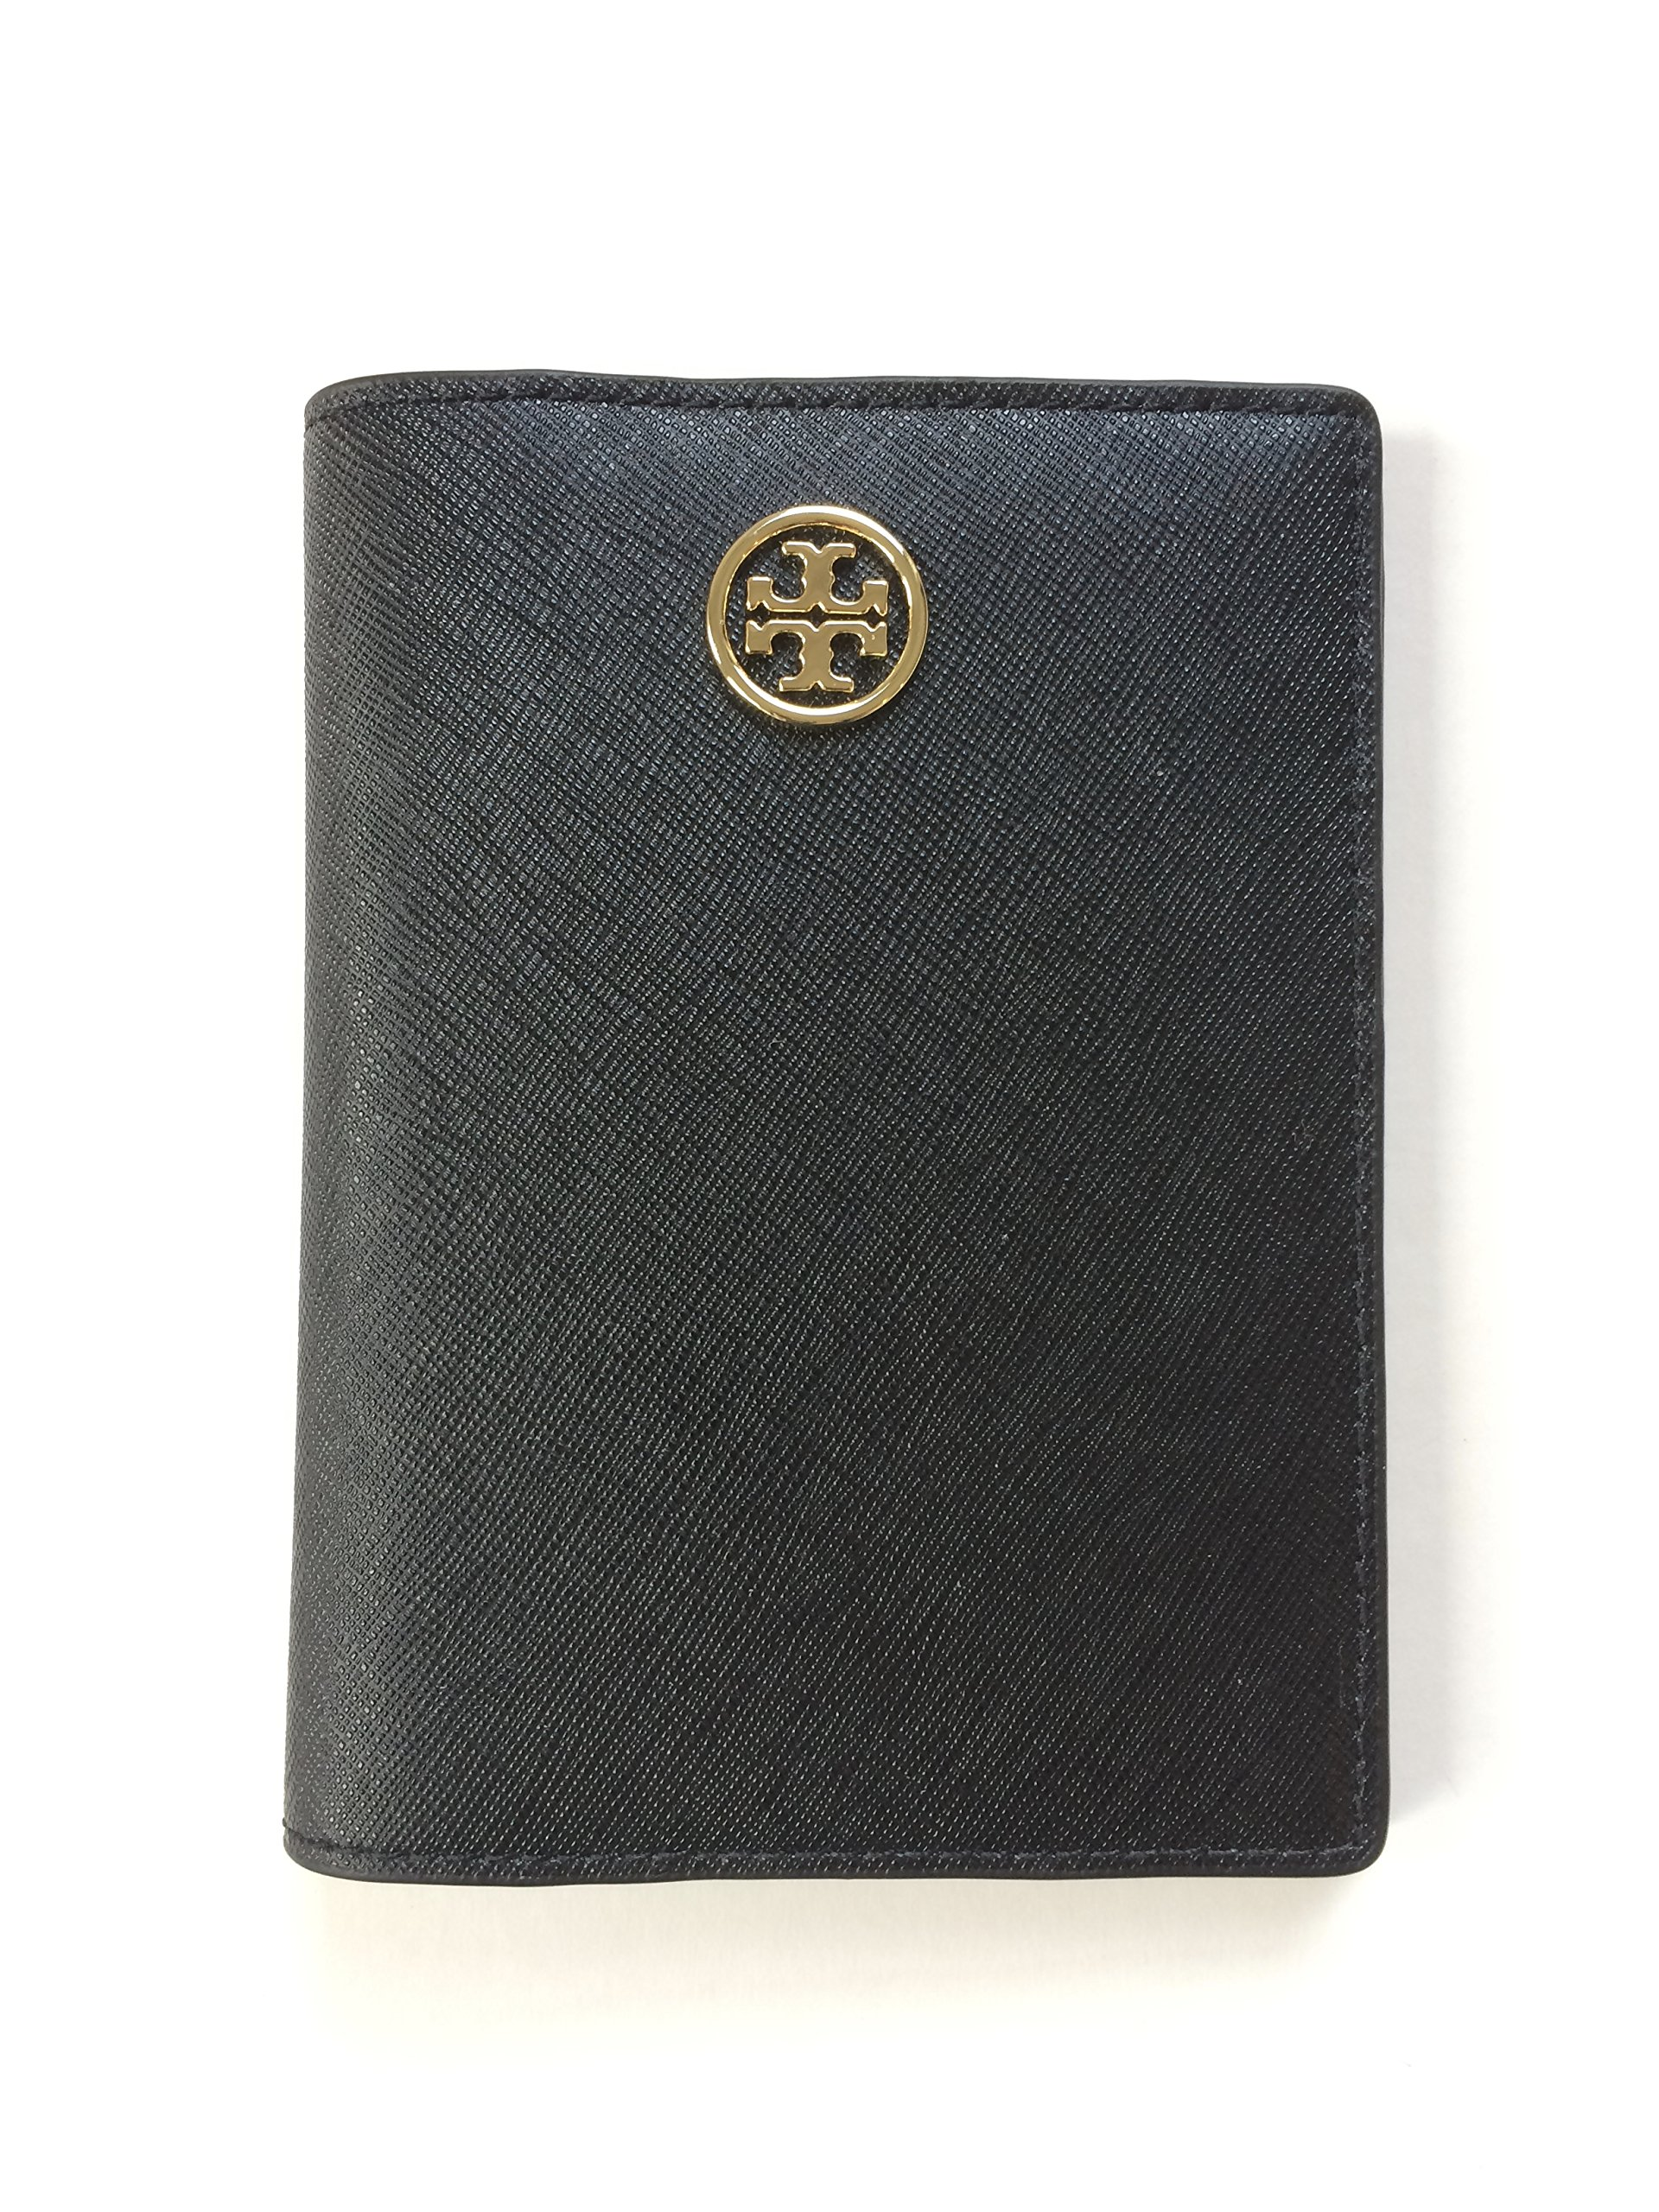 Tory Burch Robinson Passport Holder in Saffiano Leather (Black) by Tory Burch